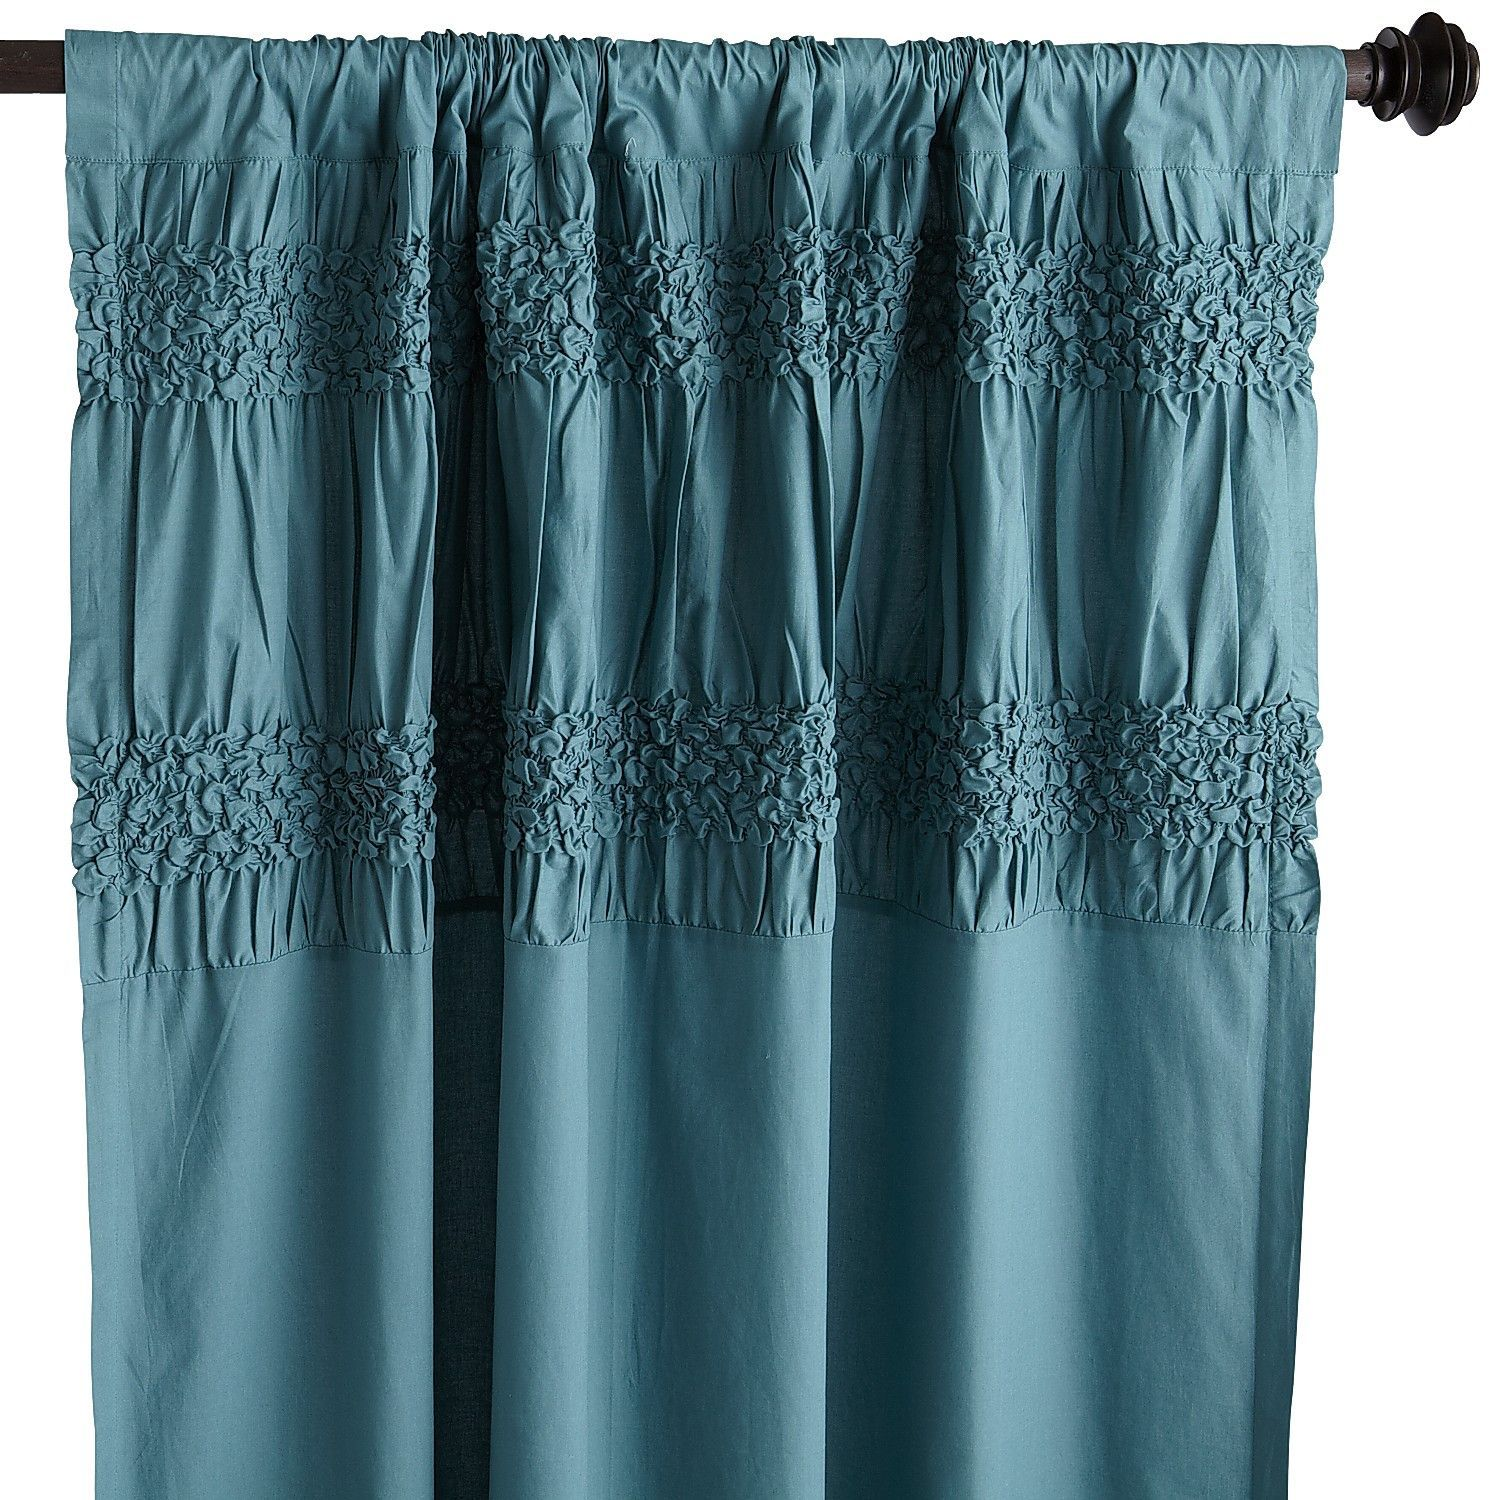 Savannah Curtain - Teal Pier 1